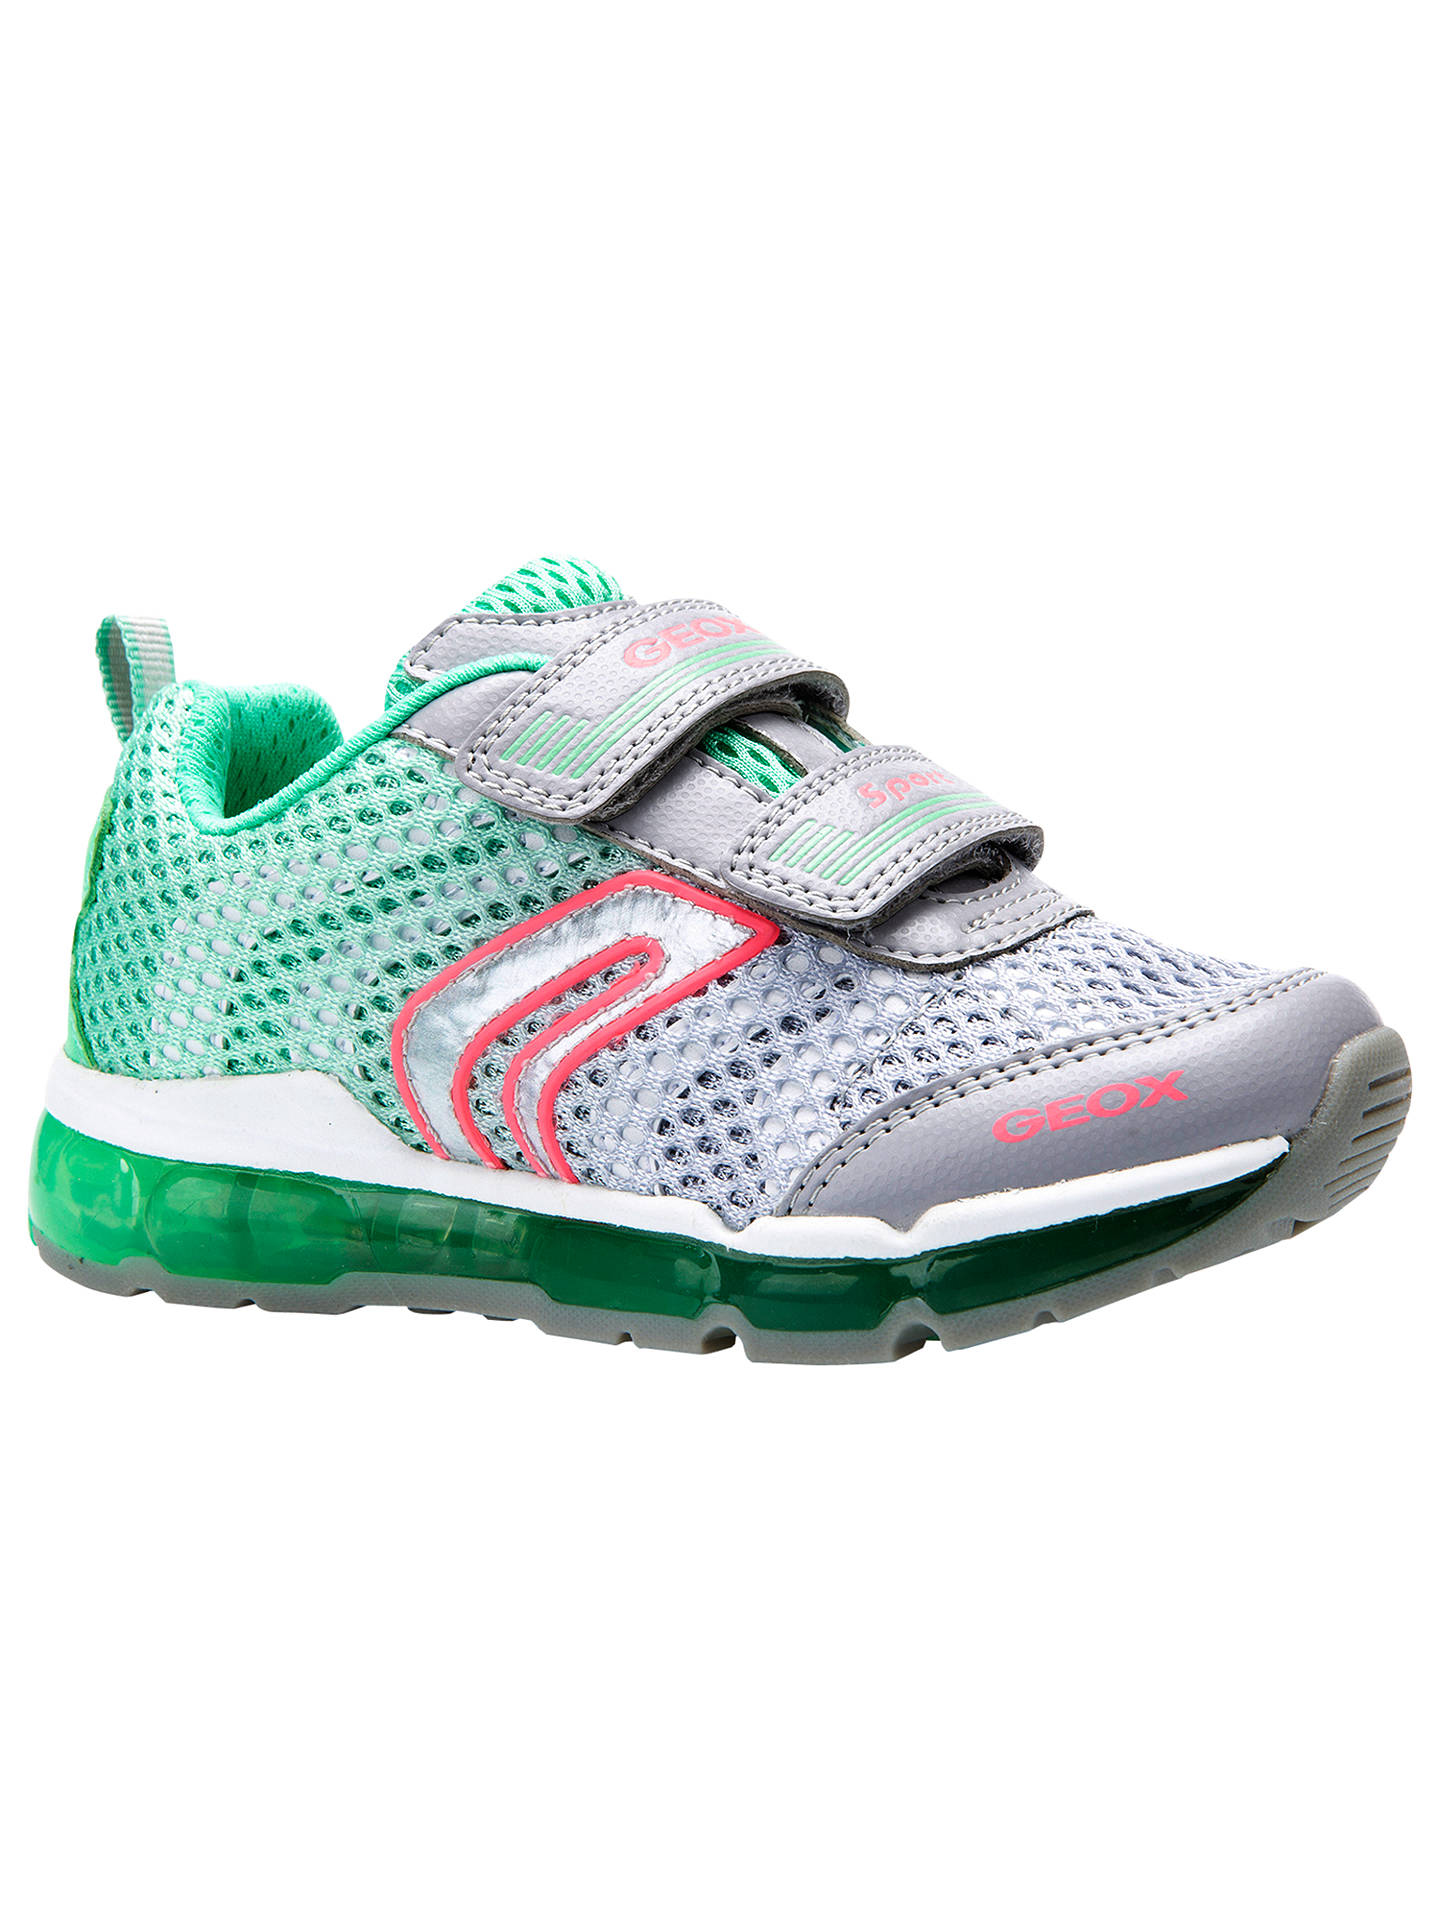 UK Geox respira android girl kids shoes in gray mint girl :